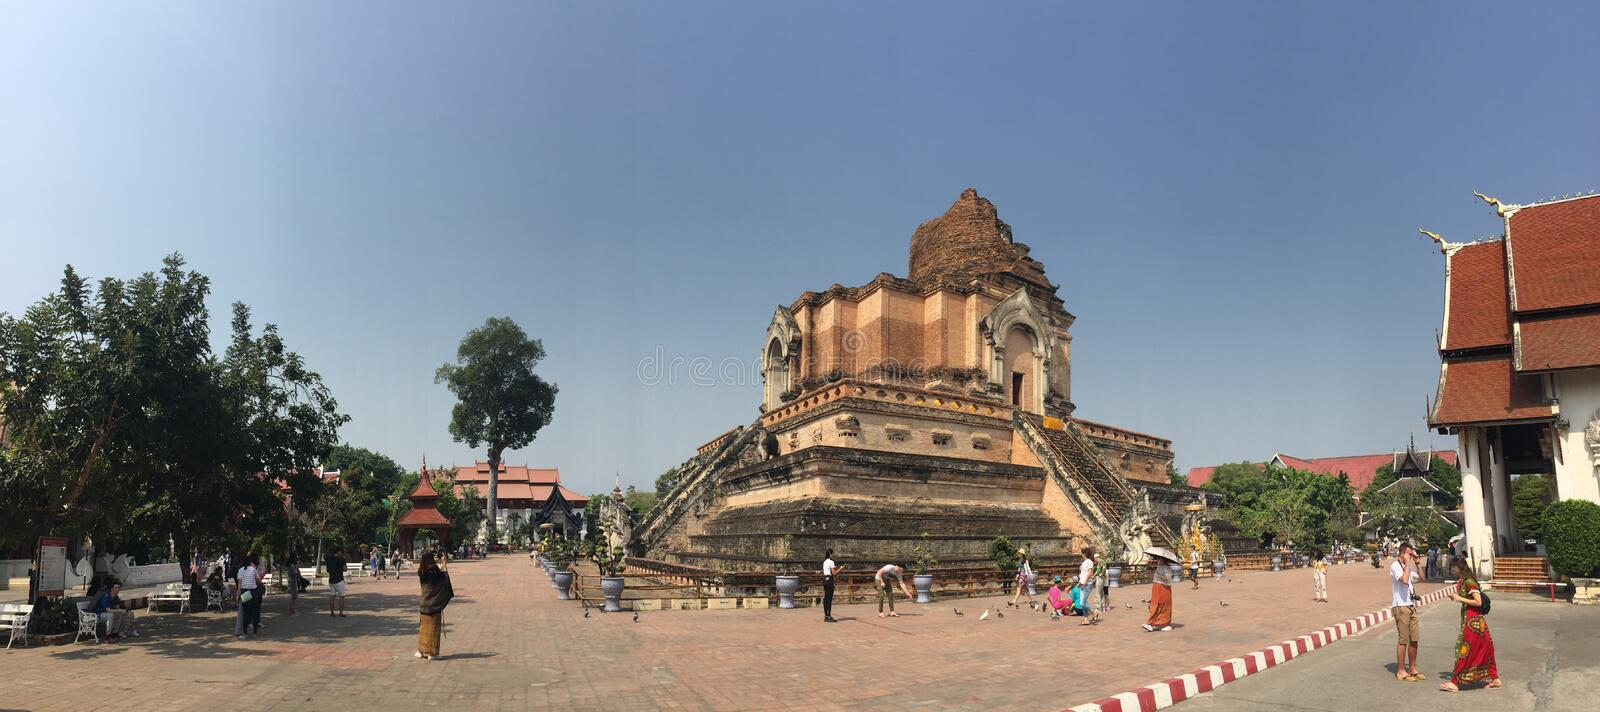 Old massive ruins pagoda of Wat Chedi Luang (temple of the big royal stupa), located in Chiang Mai, Thailand. Wat Chedi Luang was stock photography